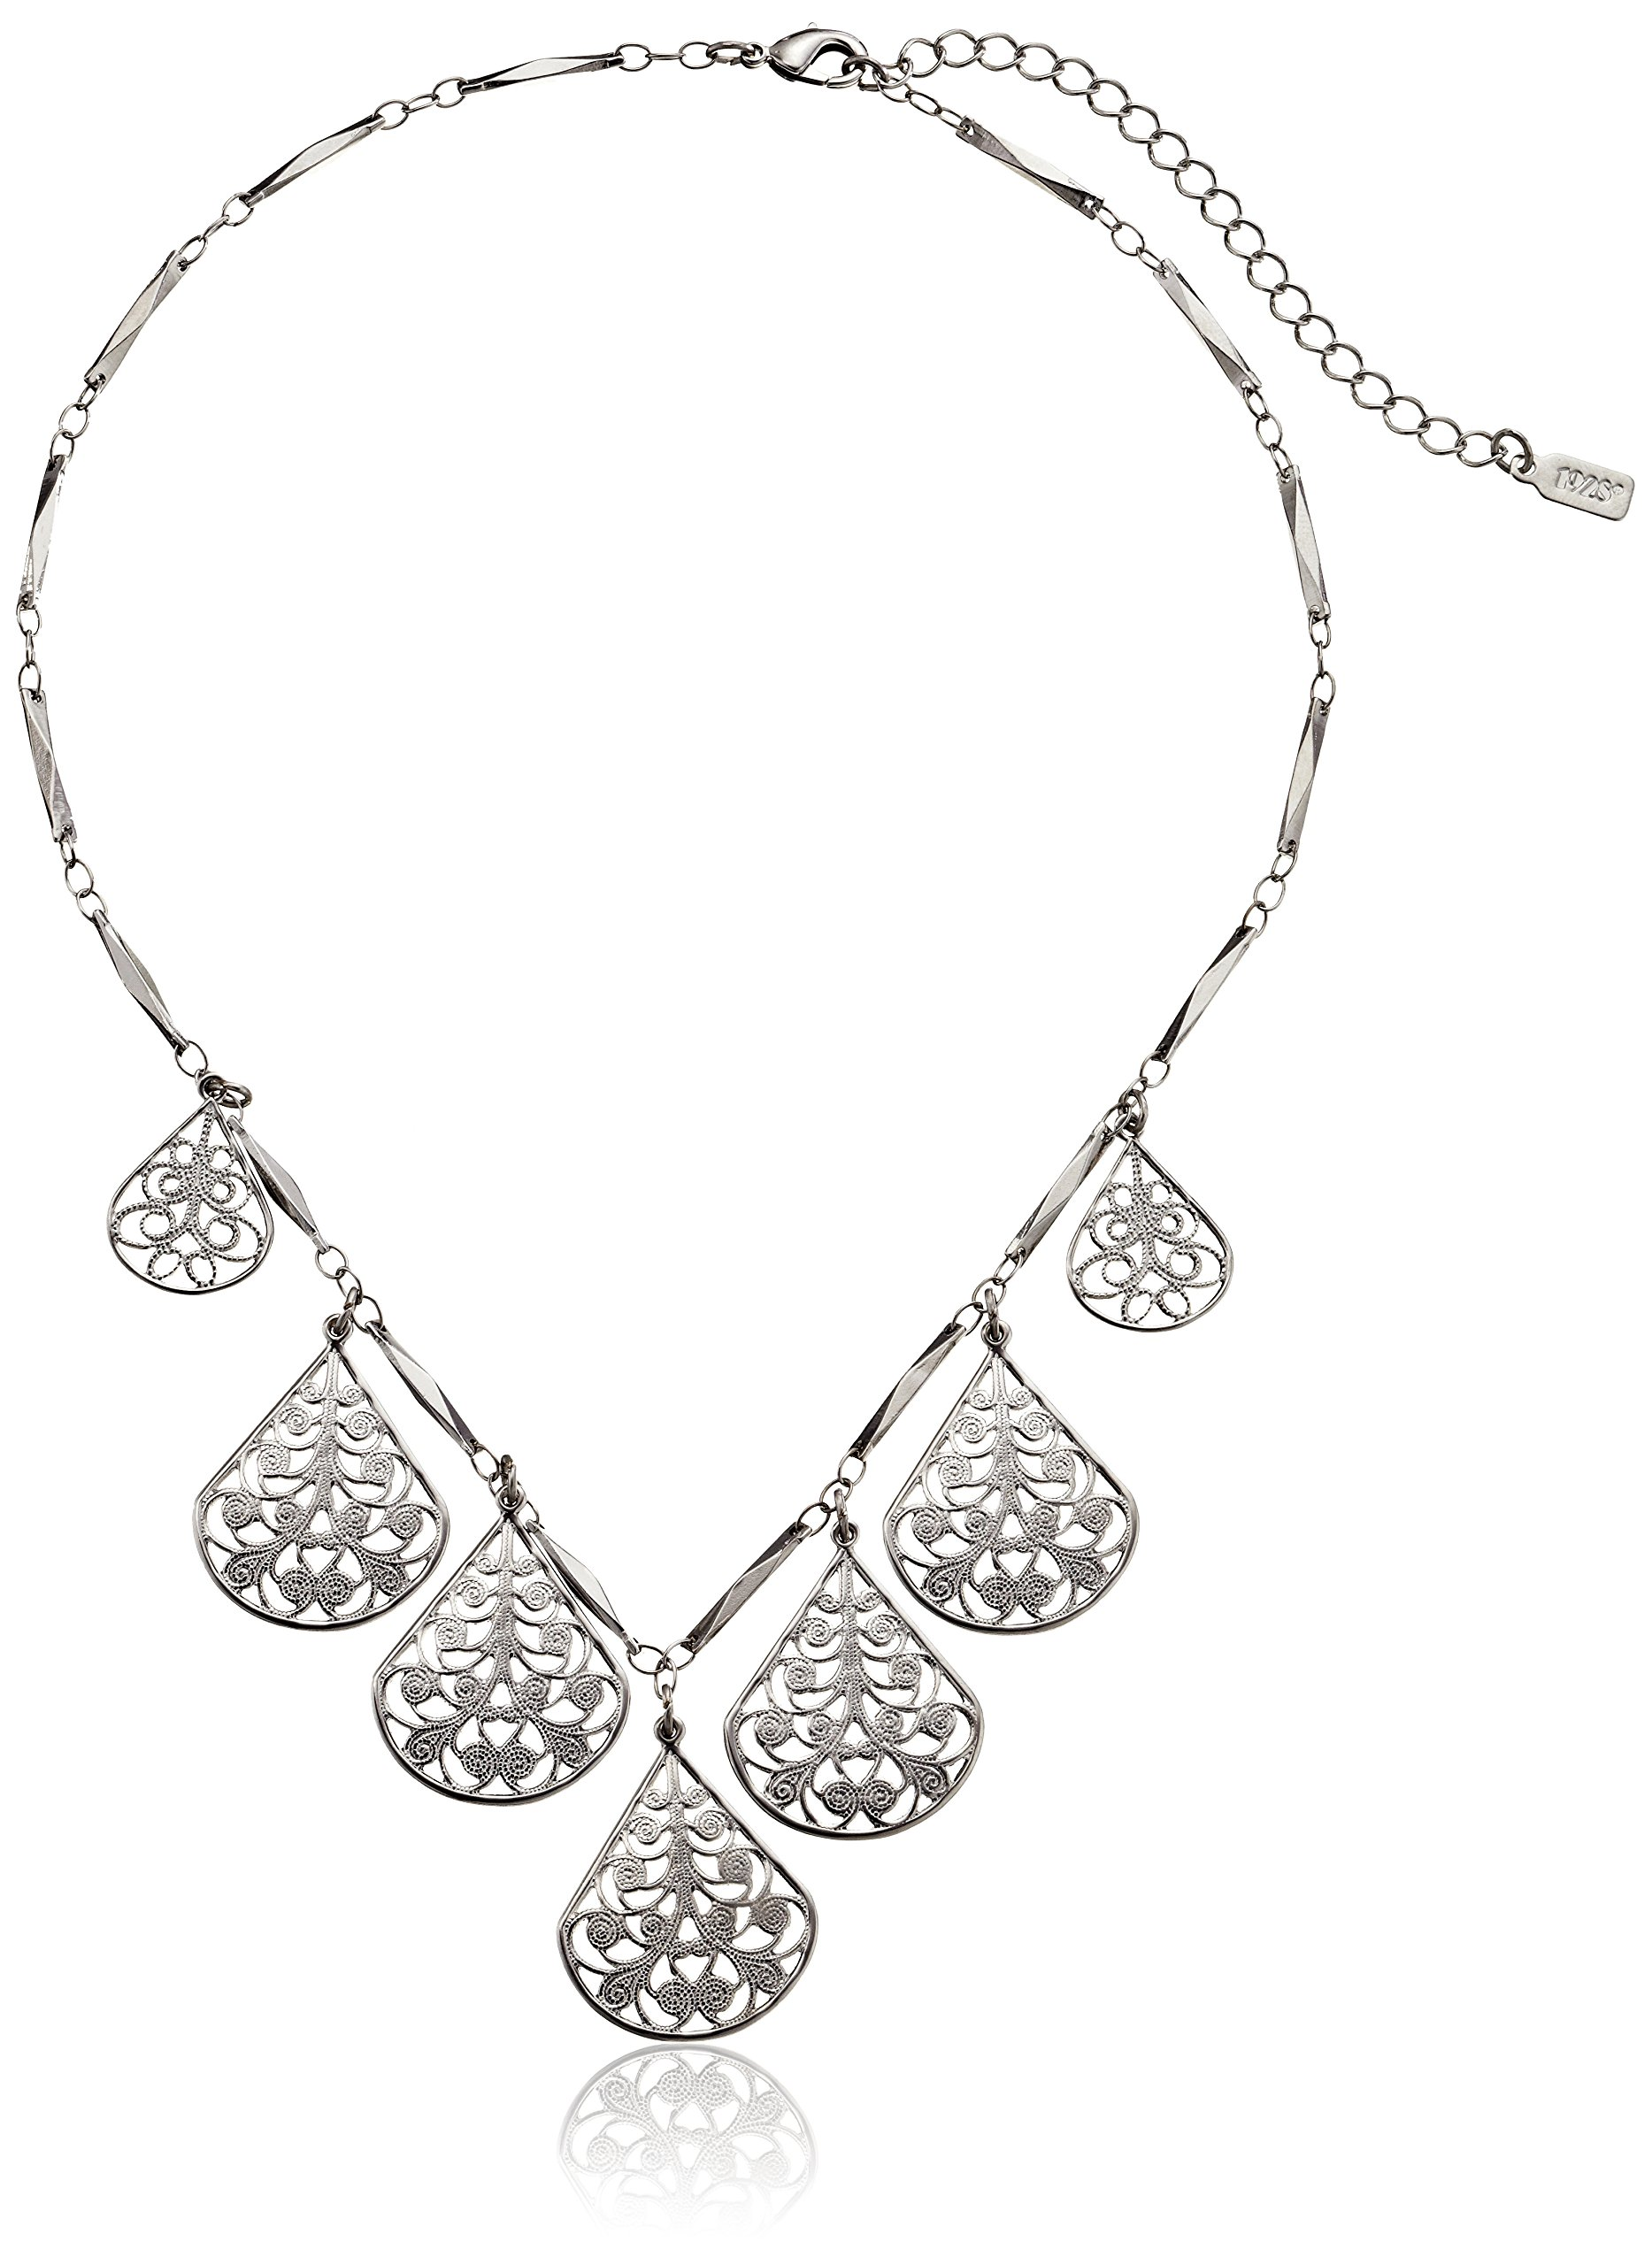 1928 Jewelry Silver-Tone Vine Filigree Teardrop Adjustable Collar Necklace, 16''